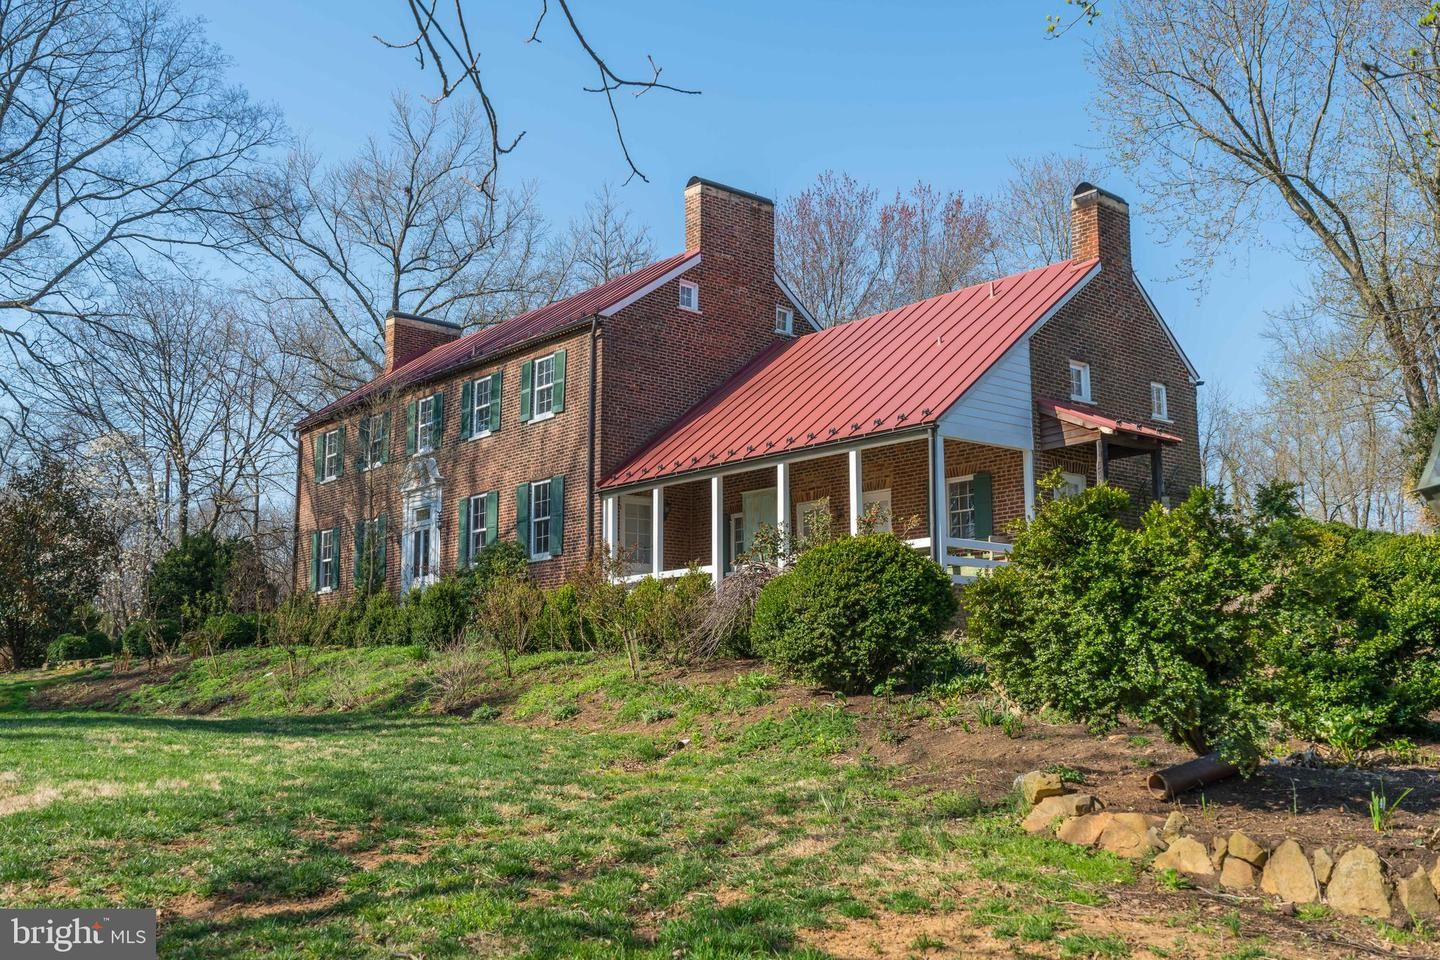 16001 OLD WATERFORD RD, Paeonian Springs, VA 20129 - #: VALO388234